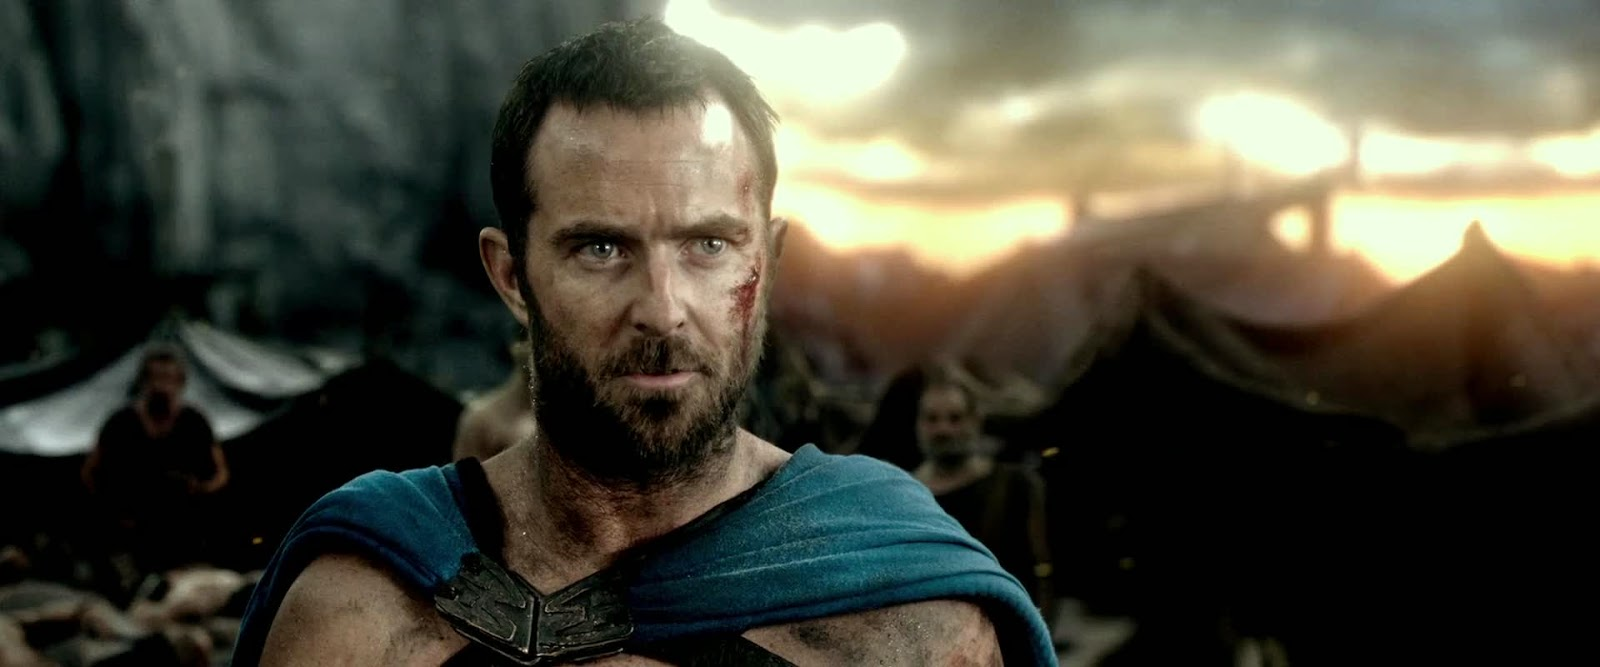 themistocles and artemisia relationship help